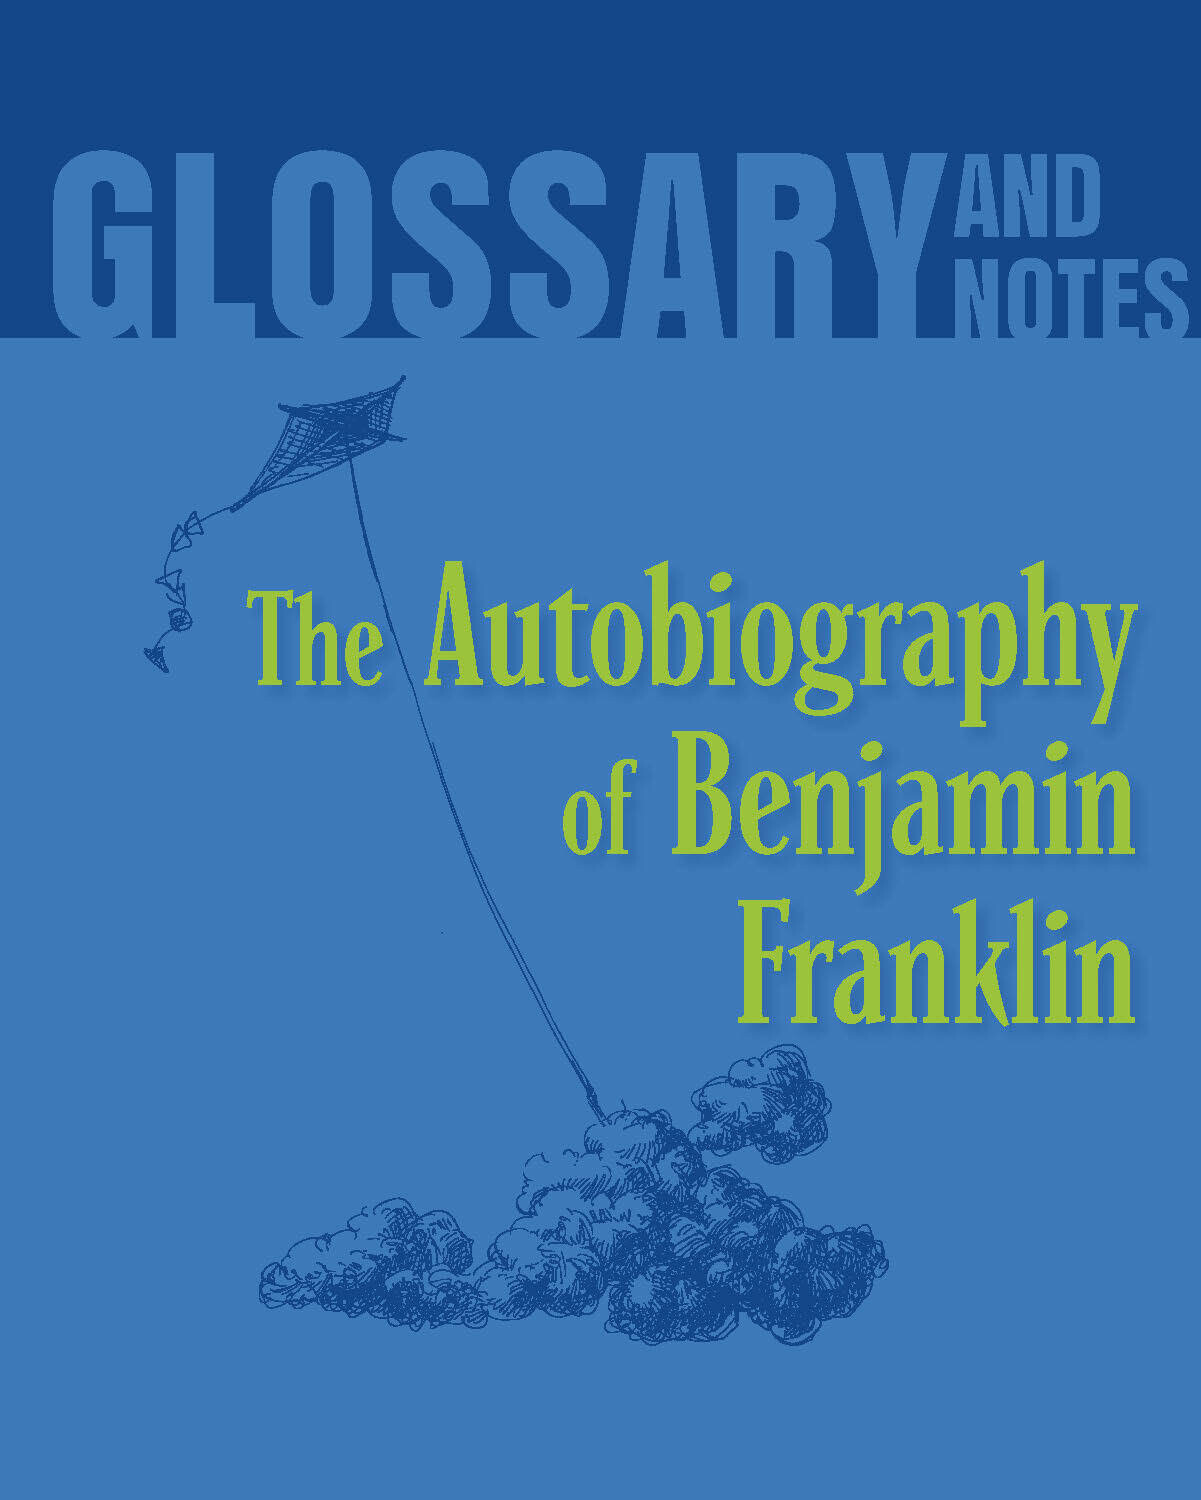 Glossary and Notes - The Autobiography of Benjamin Franklin